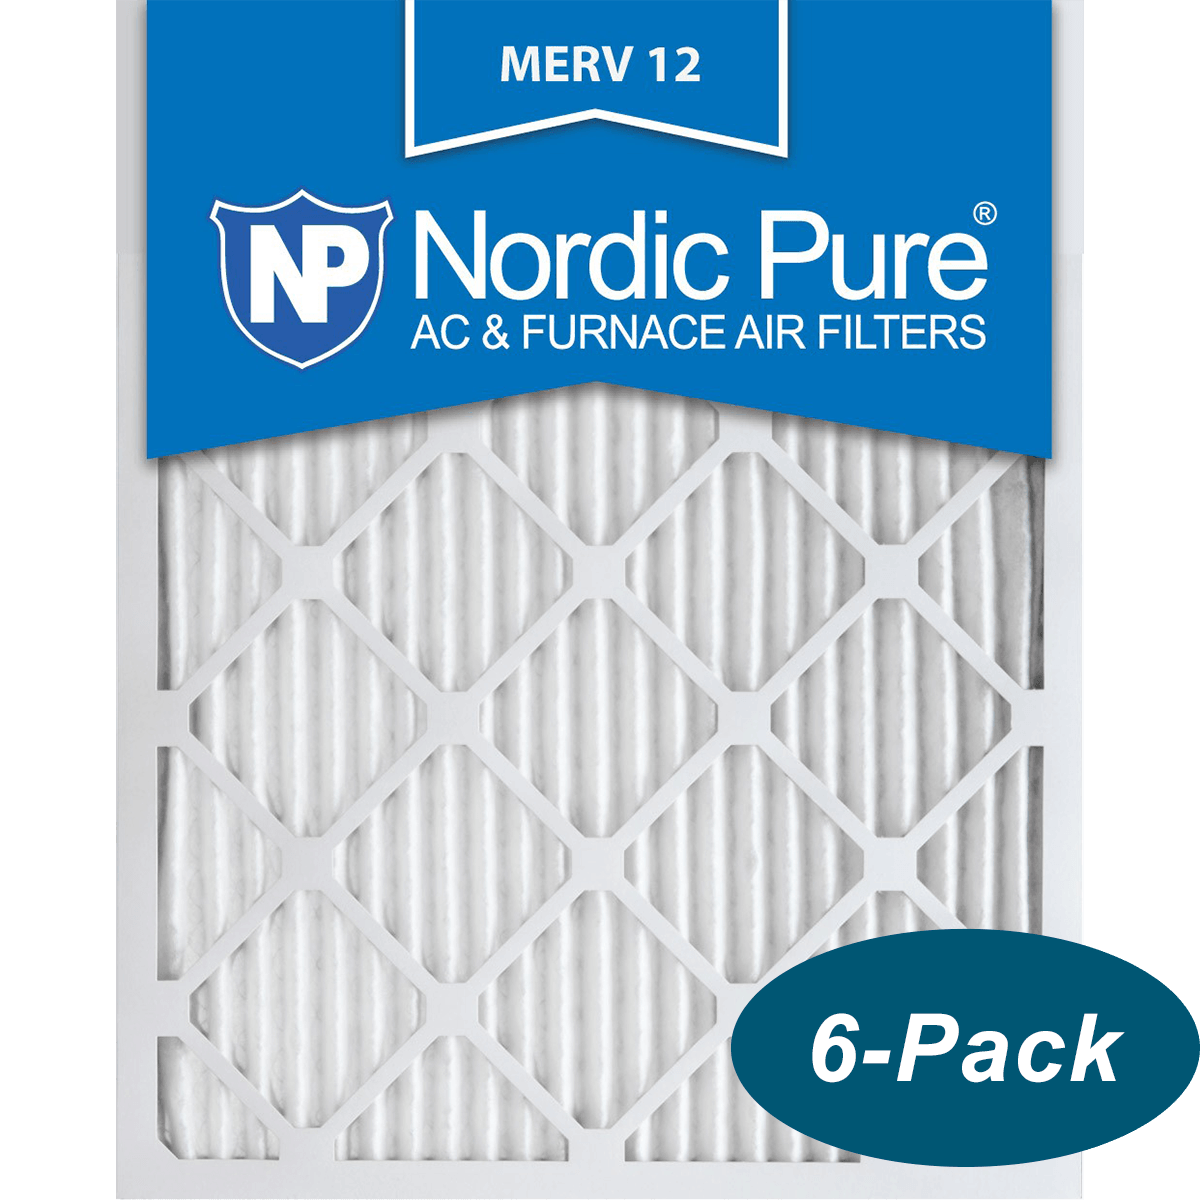 Nordic Pure 20x25x1 Pure Carbon Pleated Odor Reduction AC